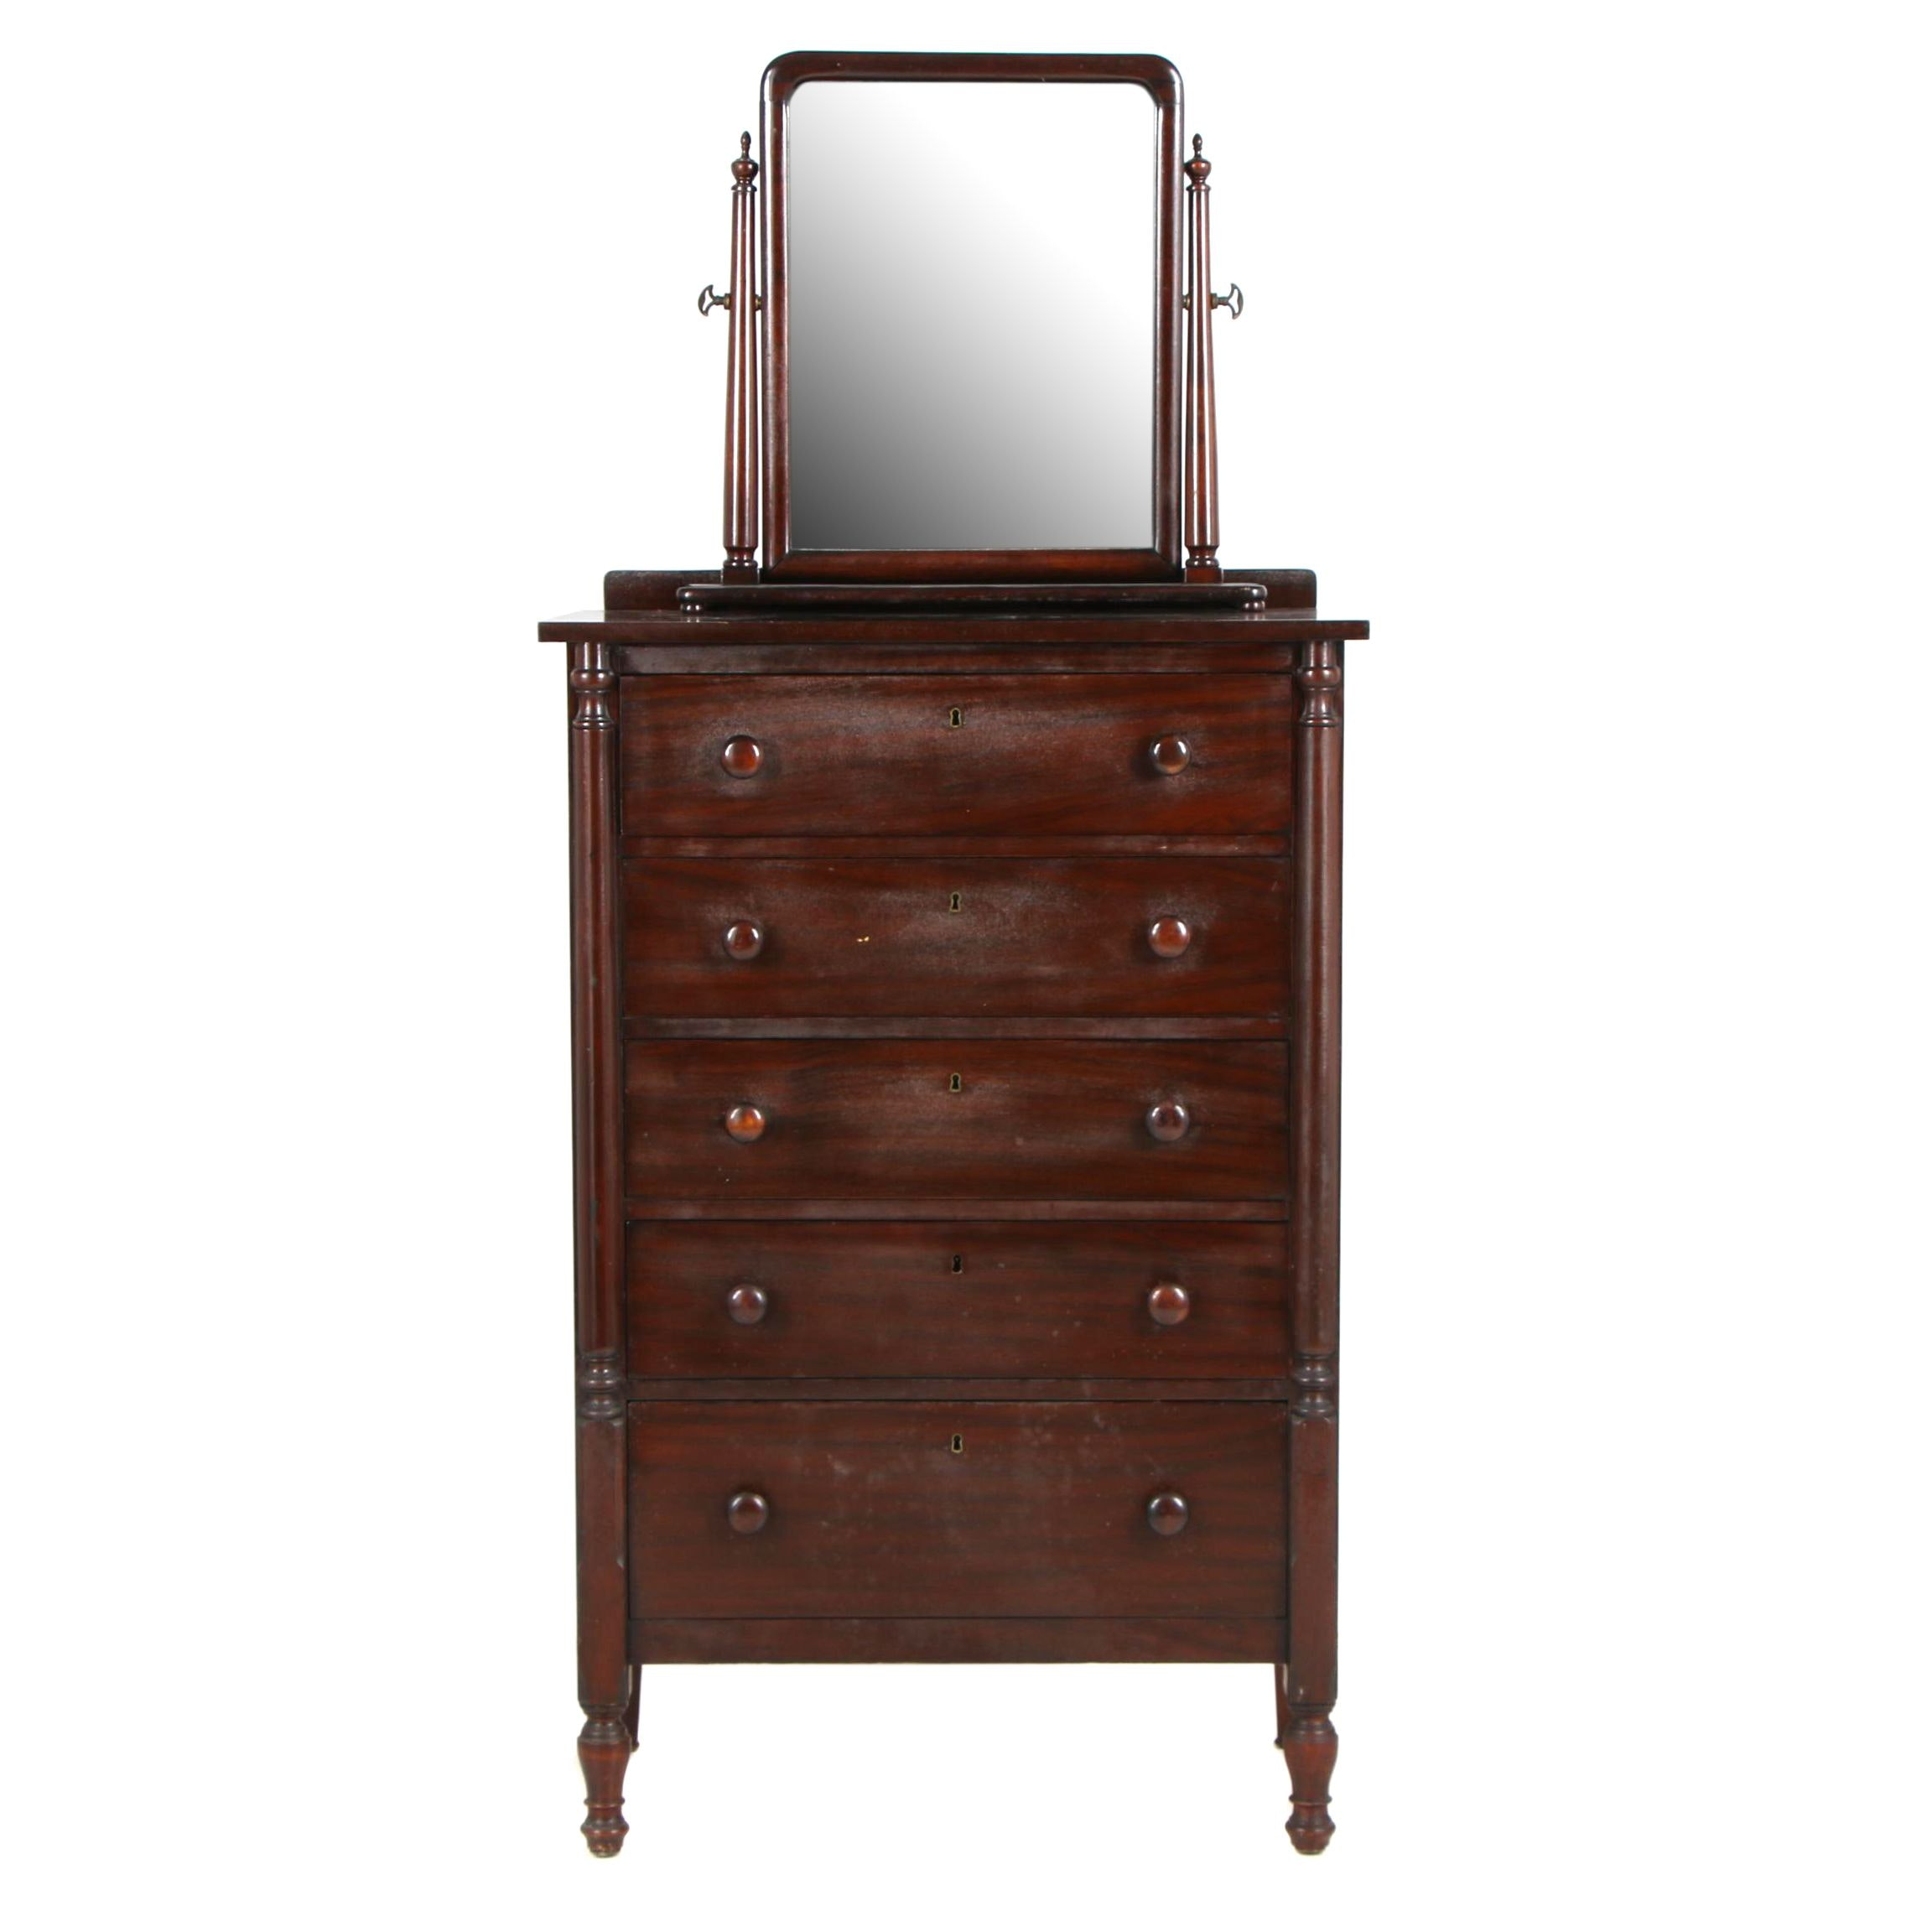 Colonial Revival Style Chest of Drawers with Mirror, Late 19th Century